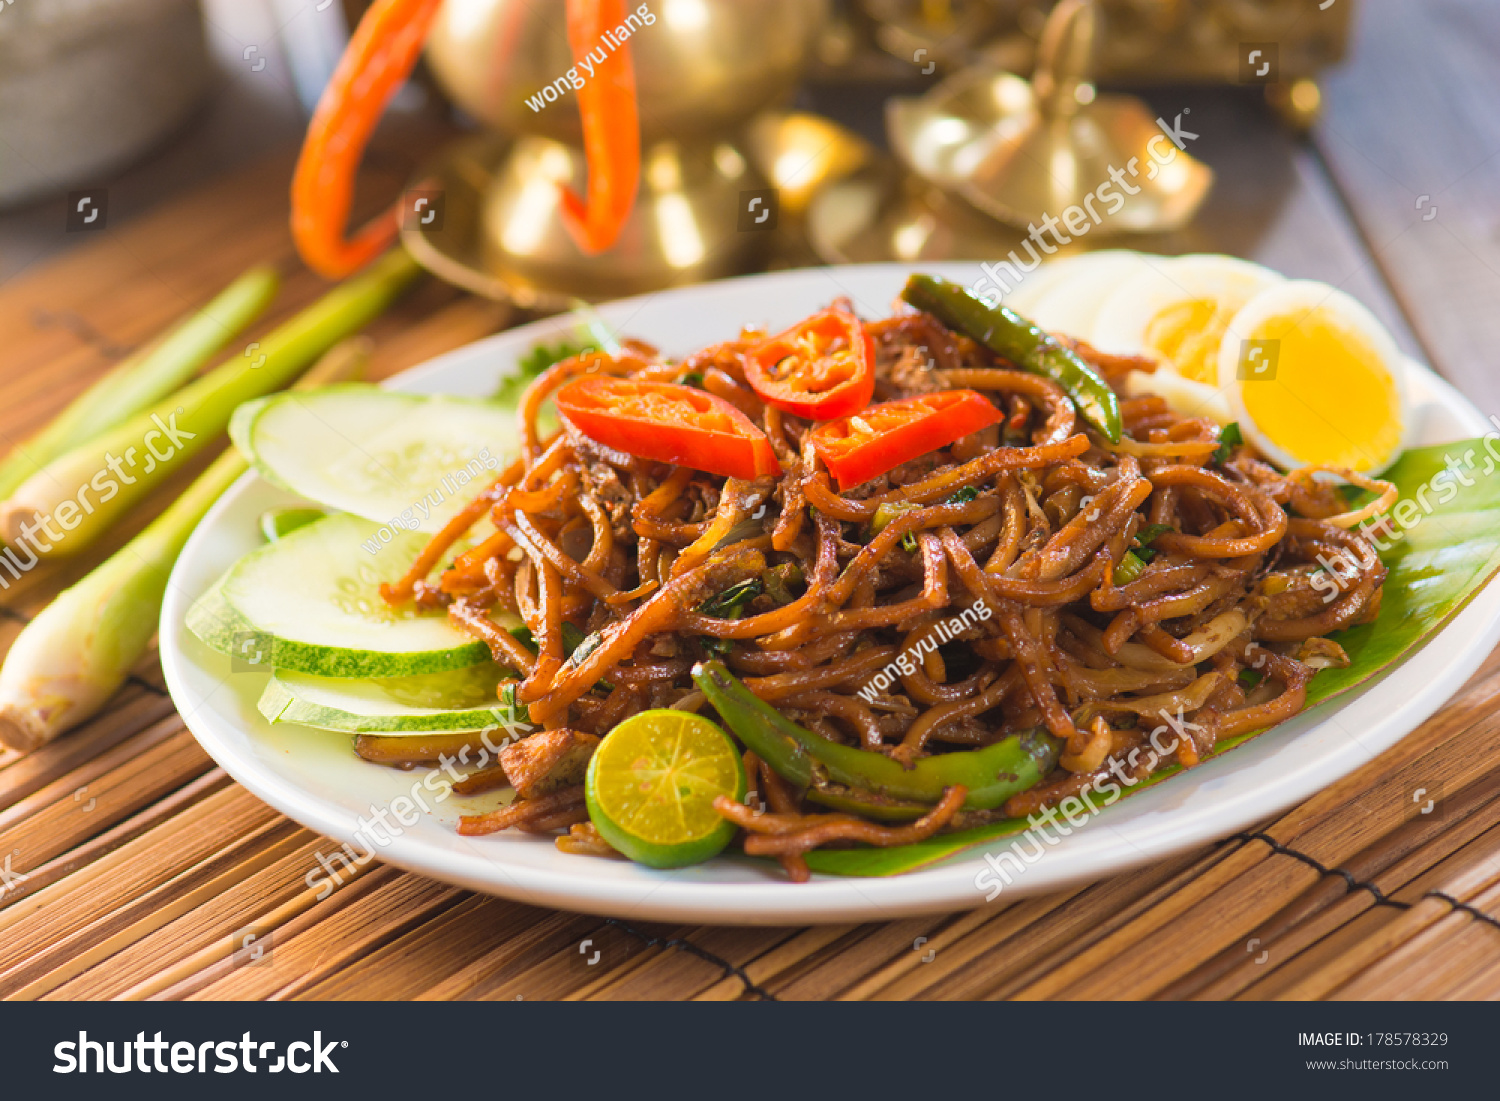 Essay about malay food